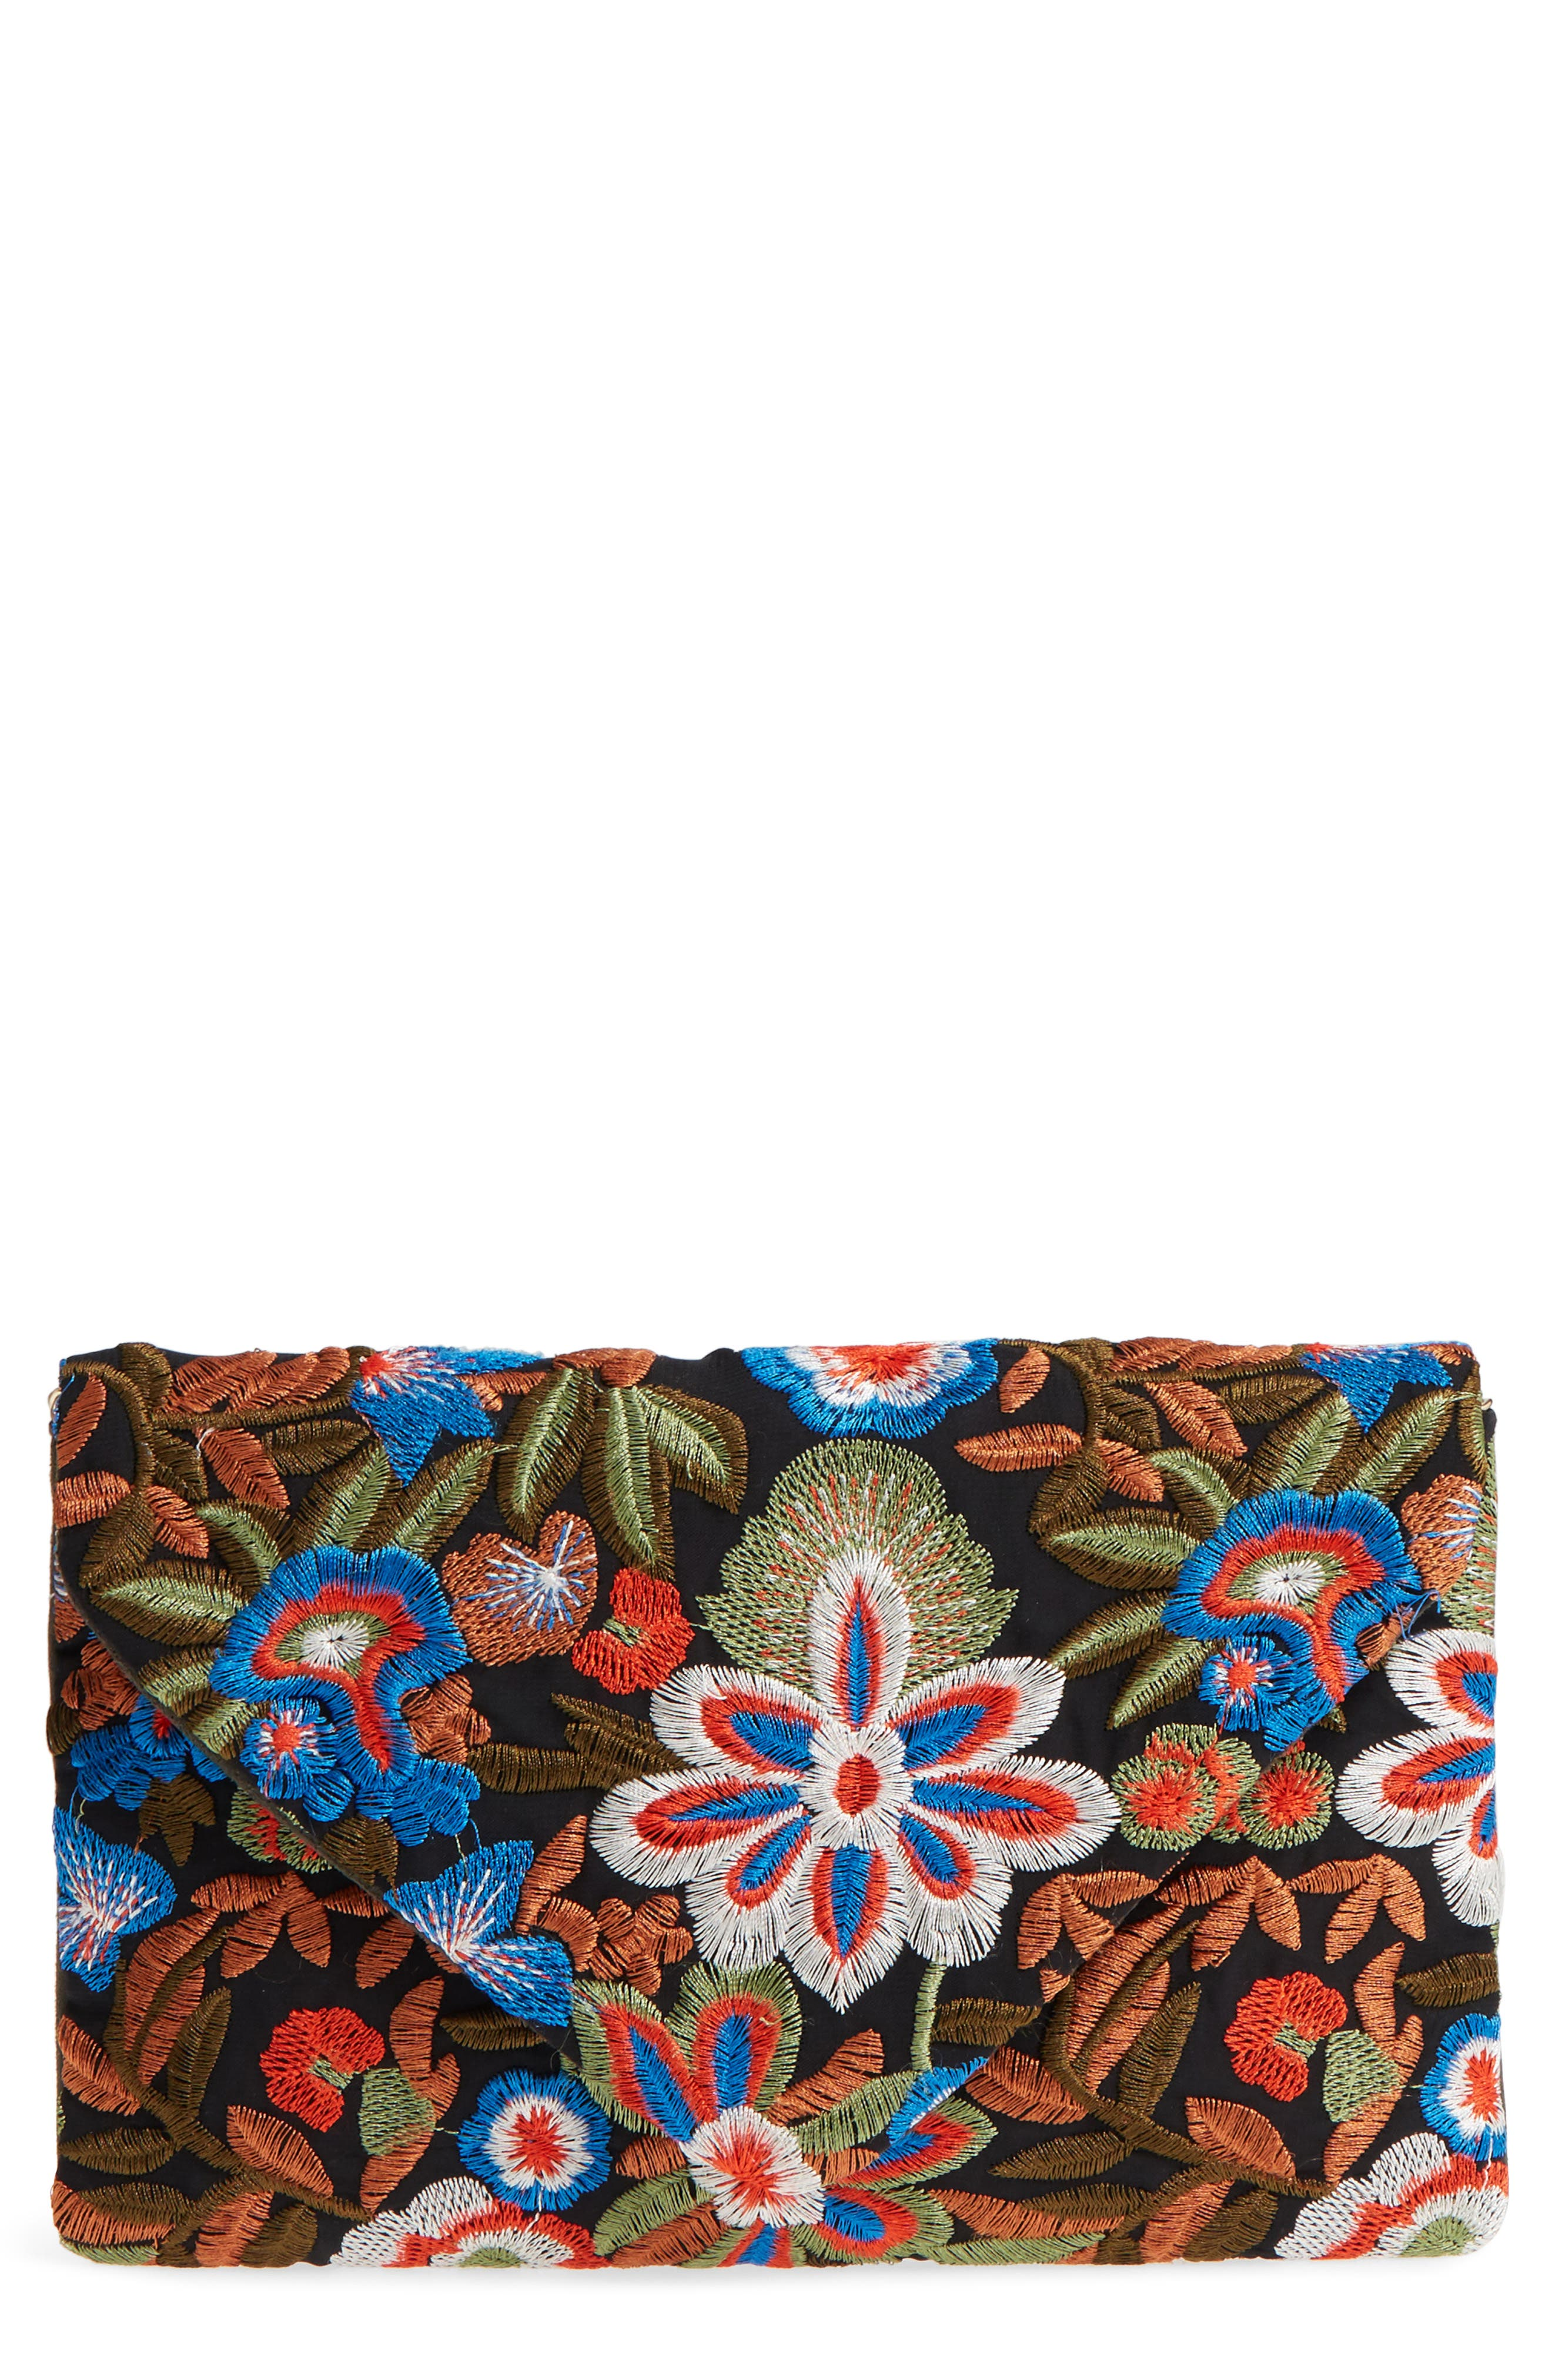 Embroidered Envelope Clutch,                             Main thumbnail 1, color,                             Blue Multi